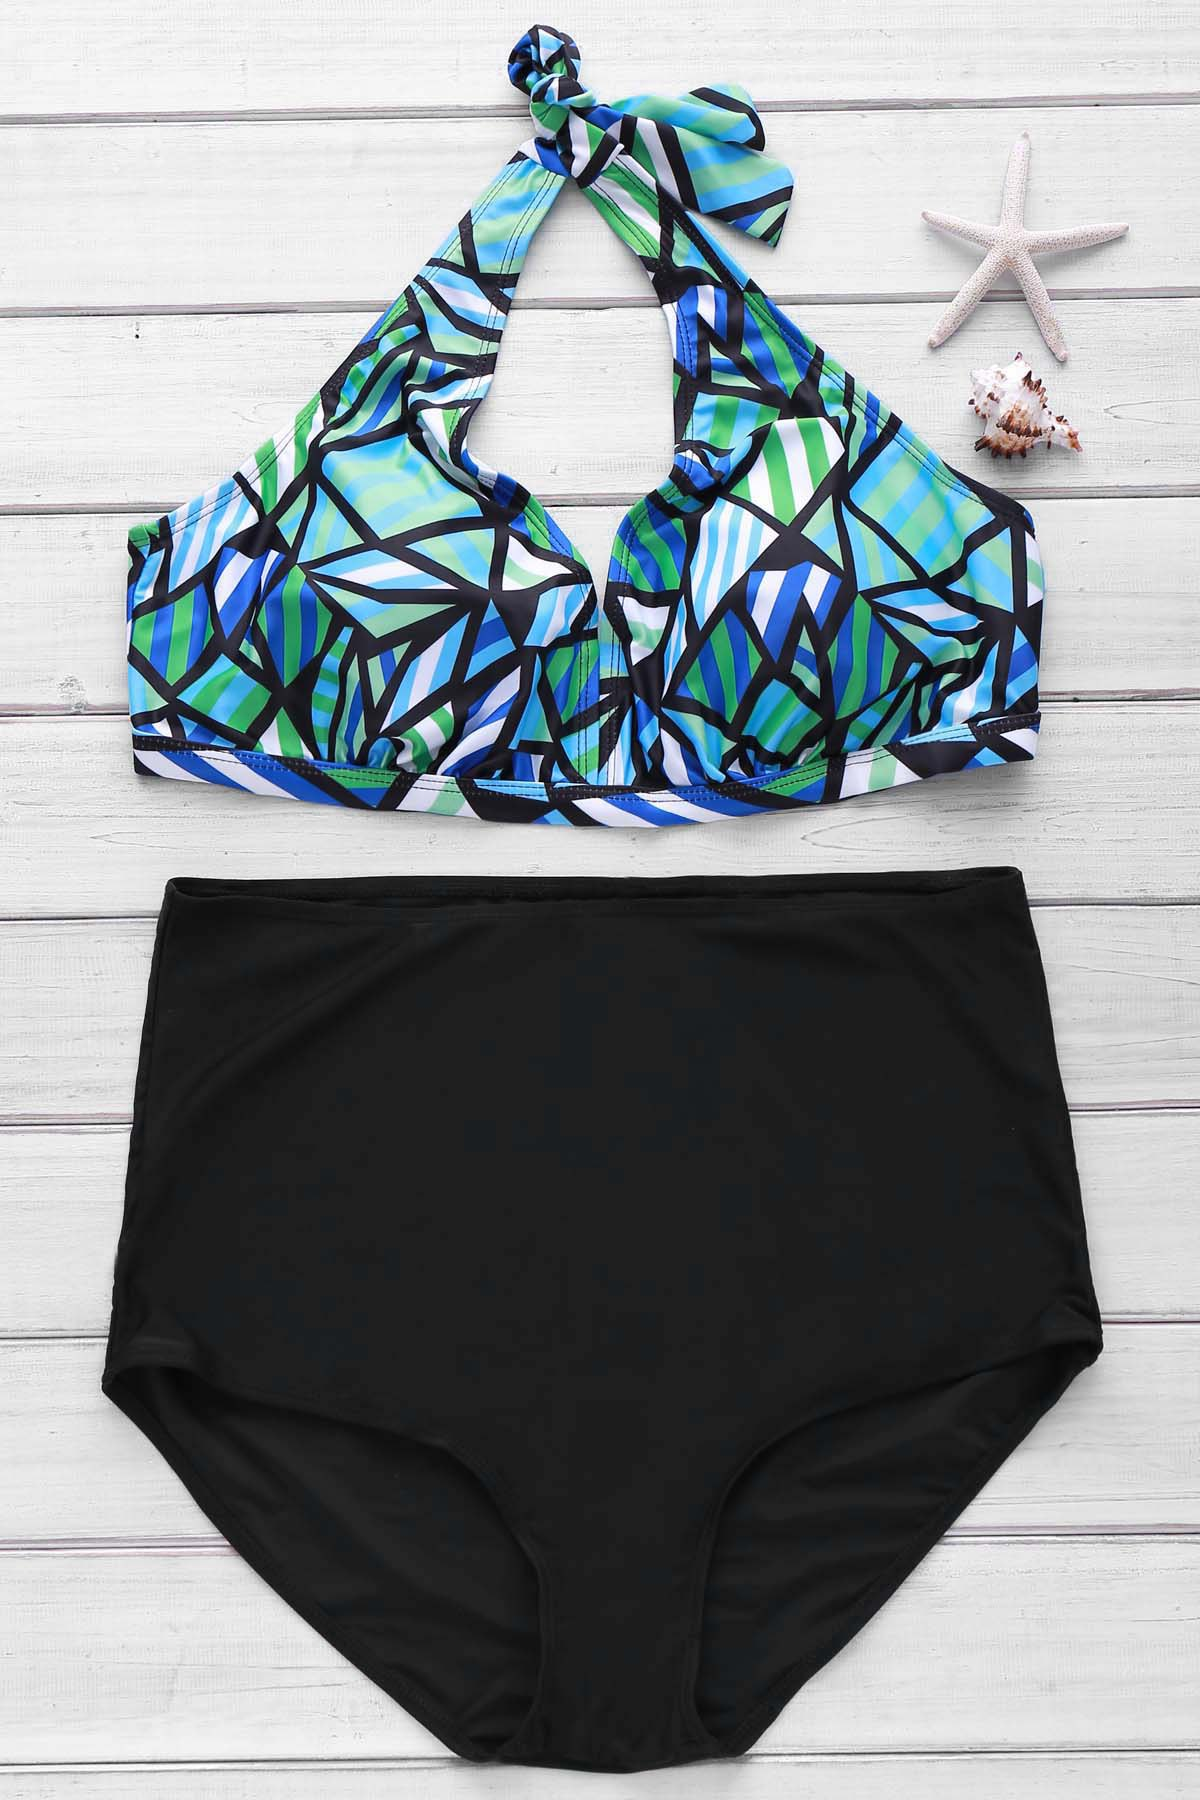 Sexy Halter Sleeveless Printed Women's High Waist Bikini Set - COLORMIX 2XL